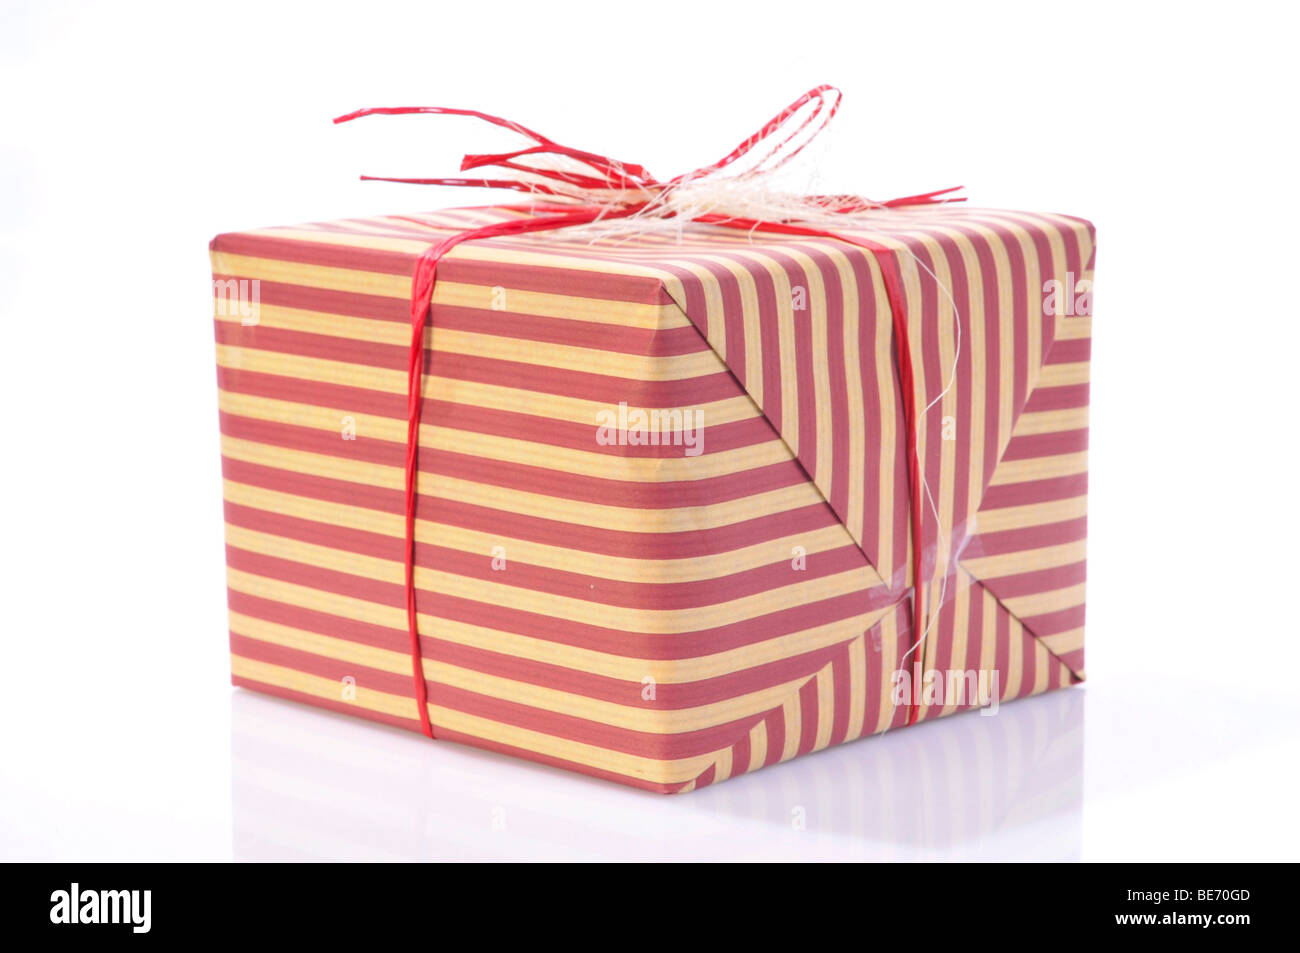 Present wrapped in striped wrapping paper and a bow - Stock Image